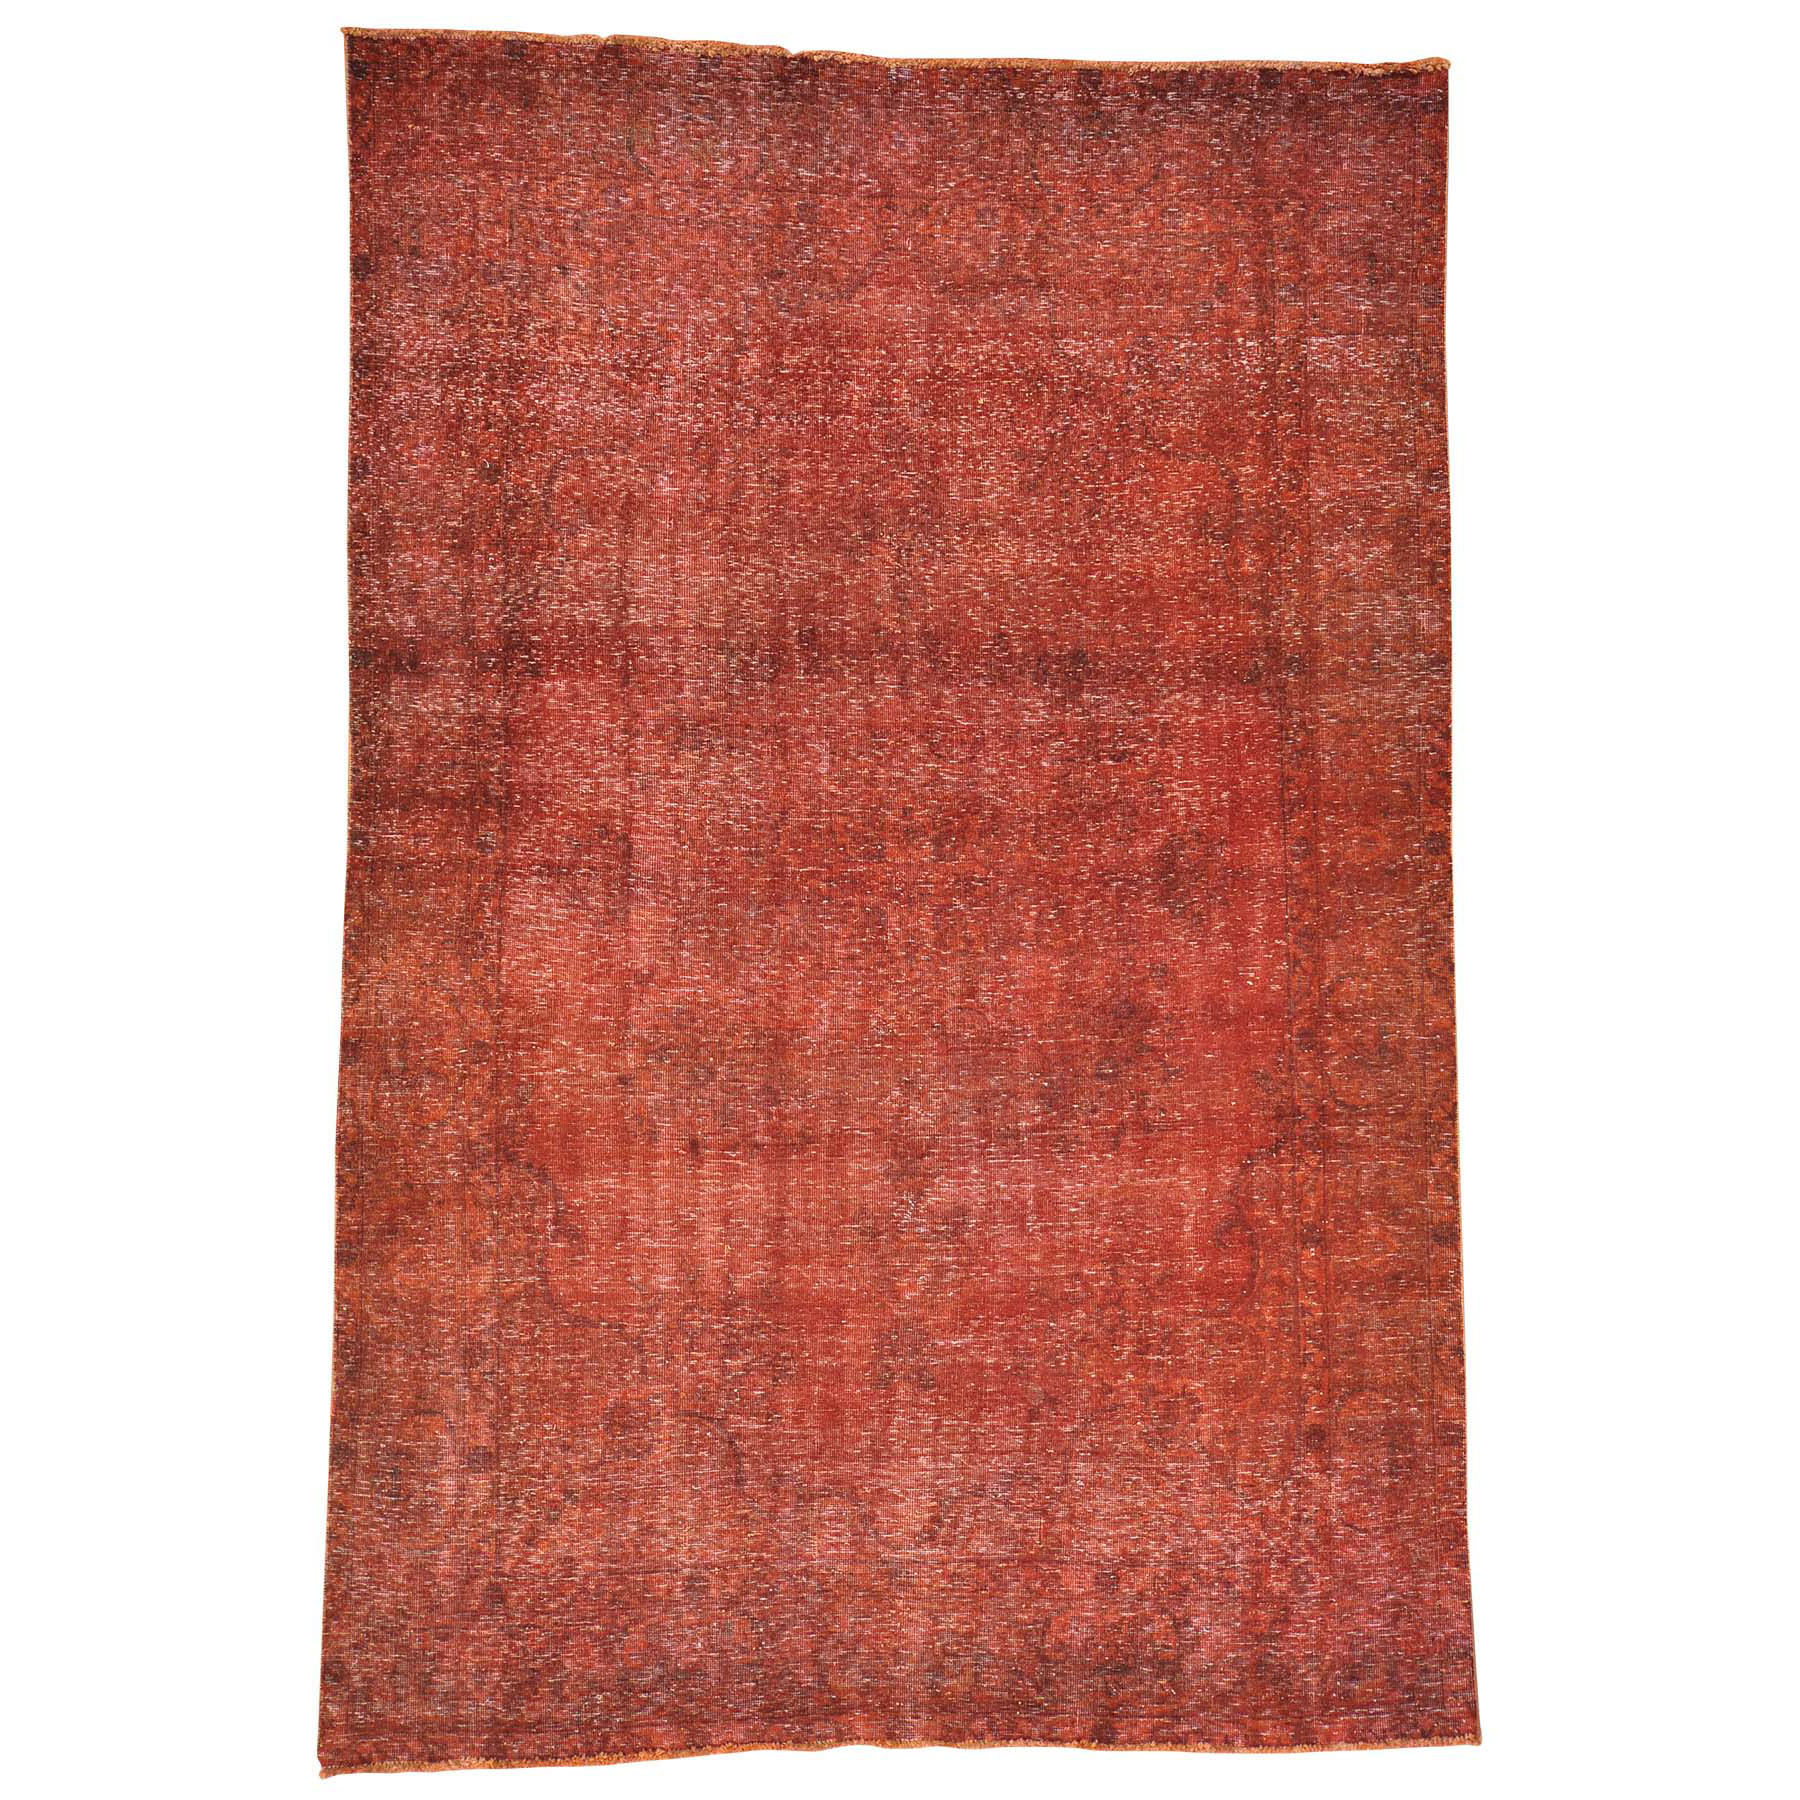 Fetneh Collection And Vintage Overdyed Collection Hand Knotted Red Rug No: 0148692